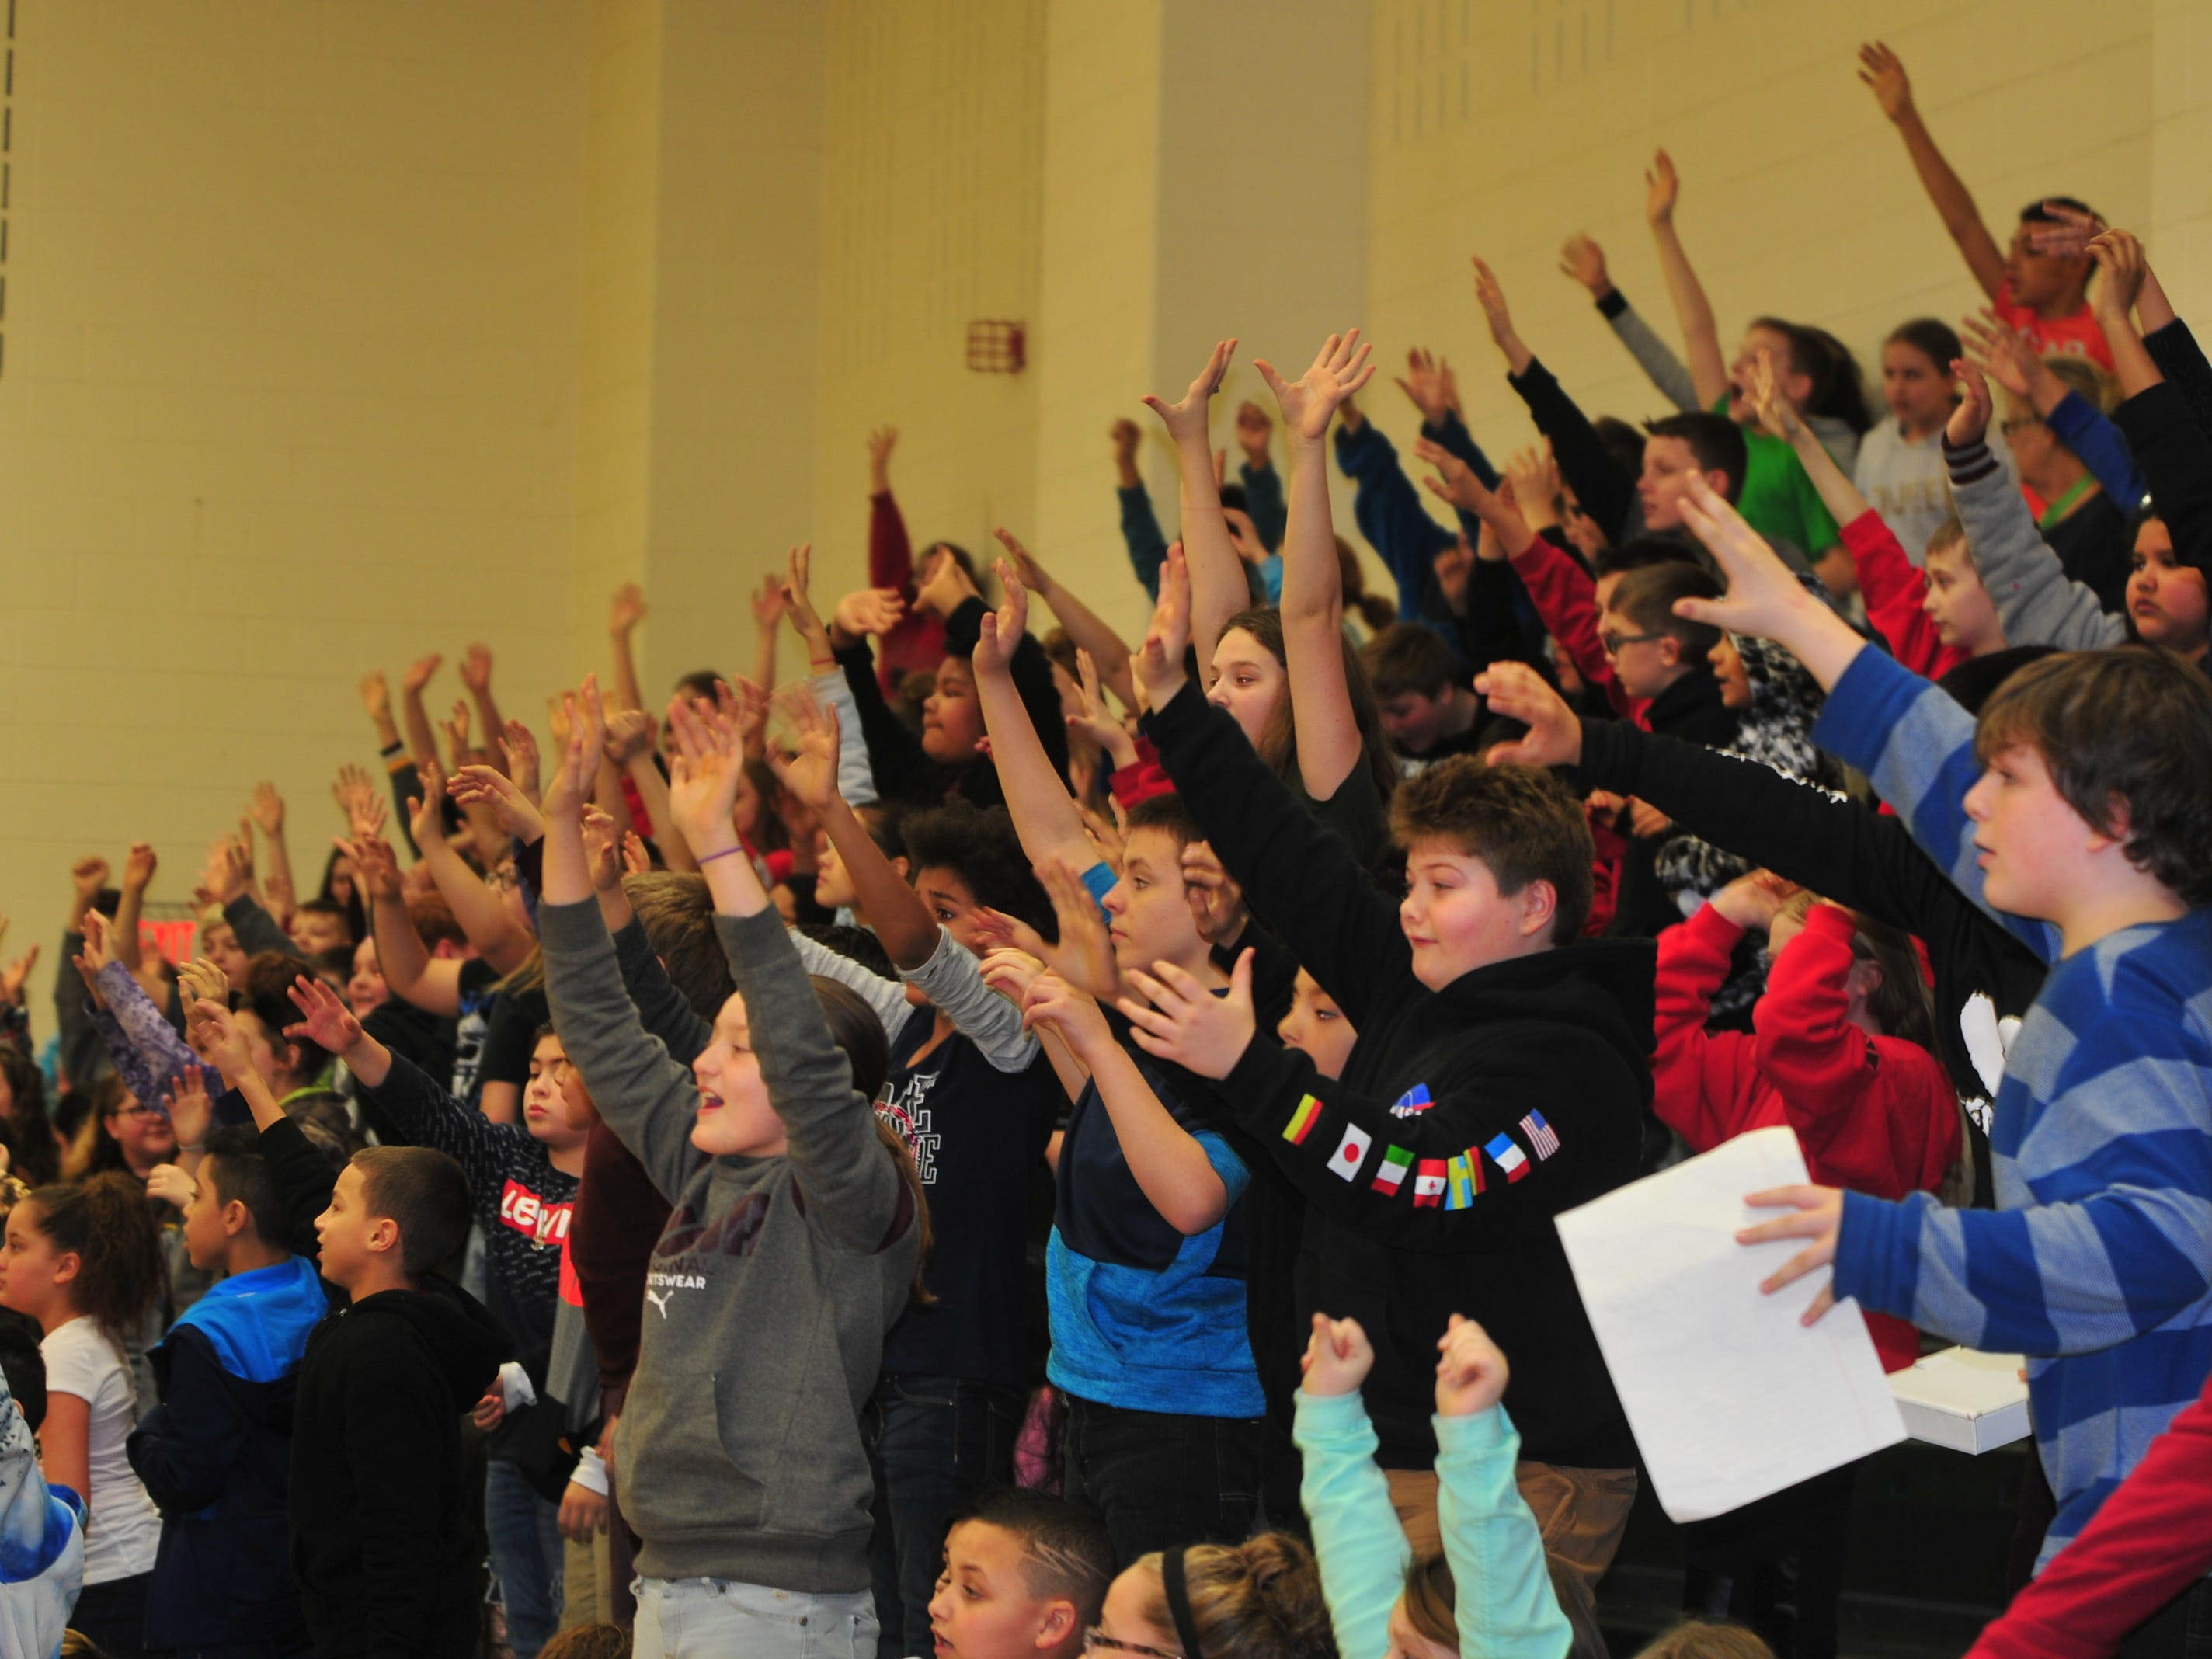 Dennis Intermediate School students raise their hands as T-shirts are tossed into the stands Wednesday.